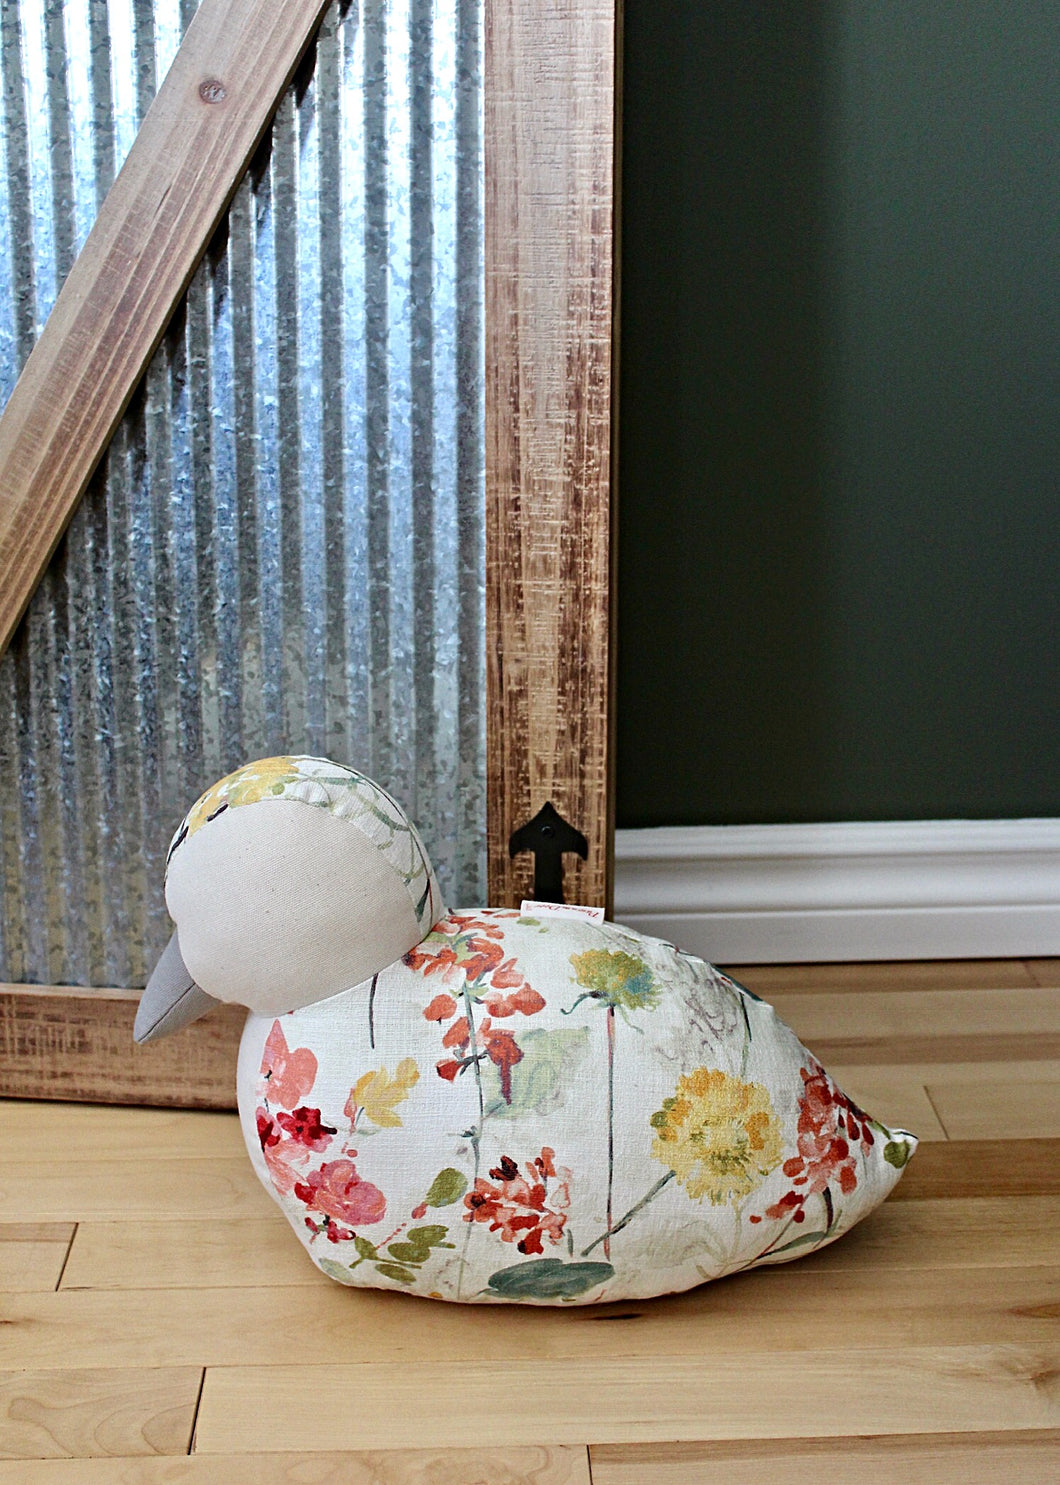 This handmade duck doorstop from Paw in the Door's Country Farm Doorstop Collection provides a charming and practical addition to any home's decor